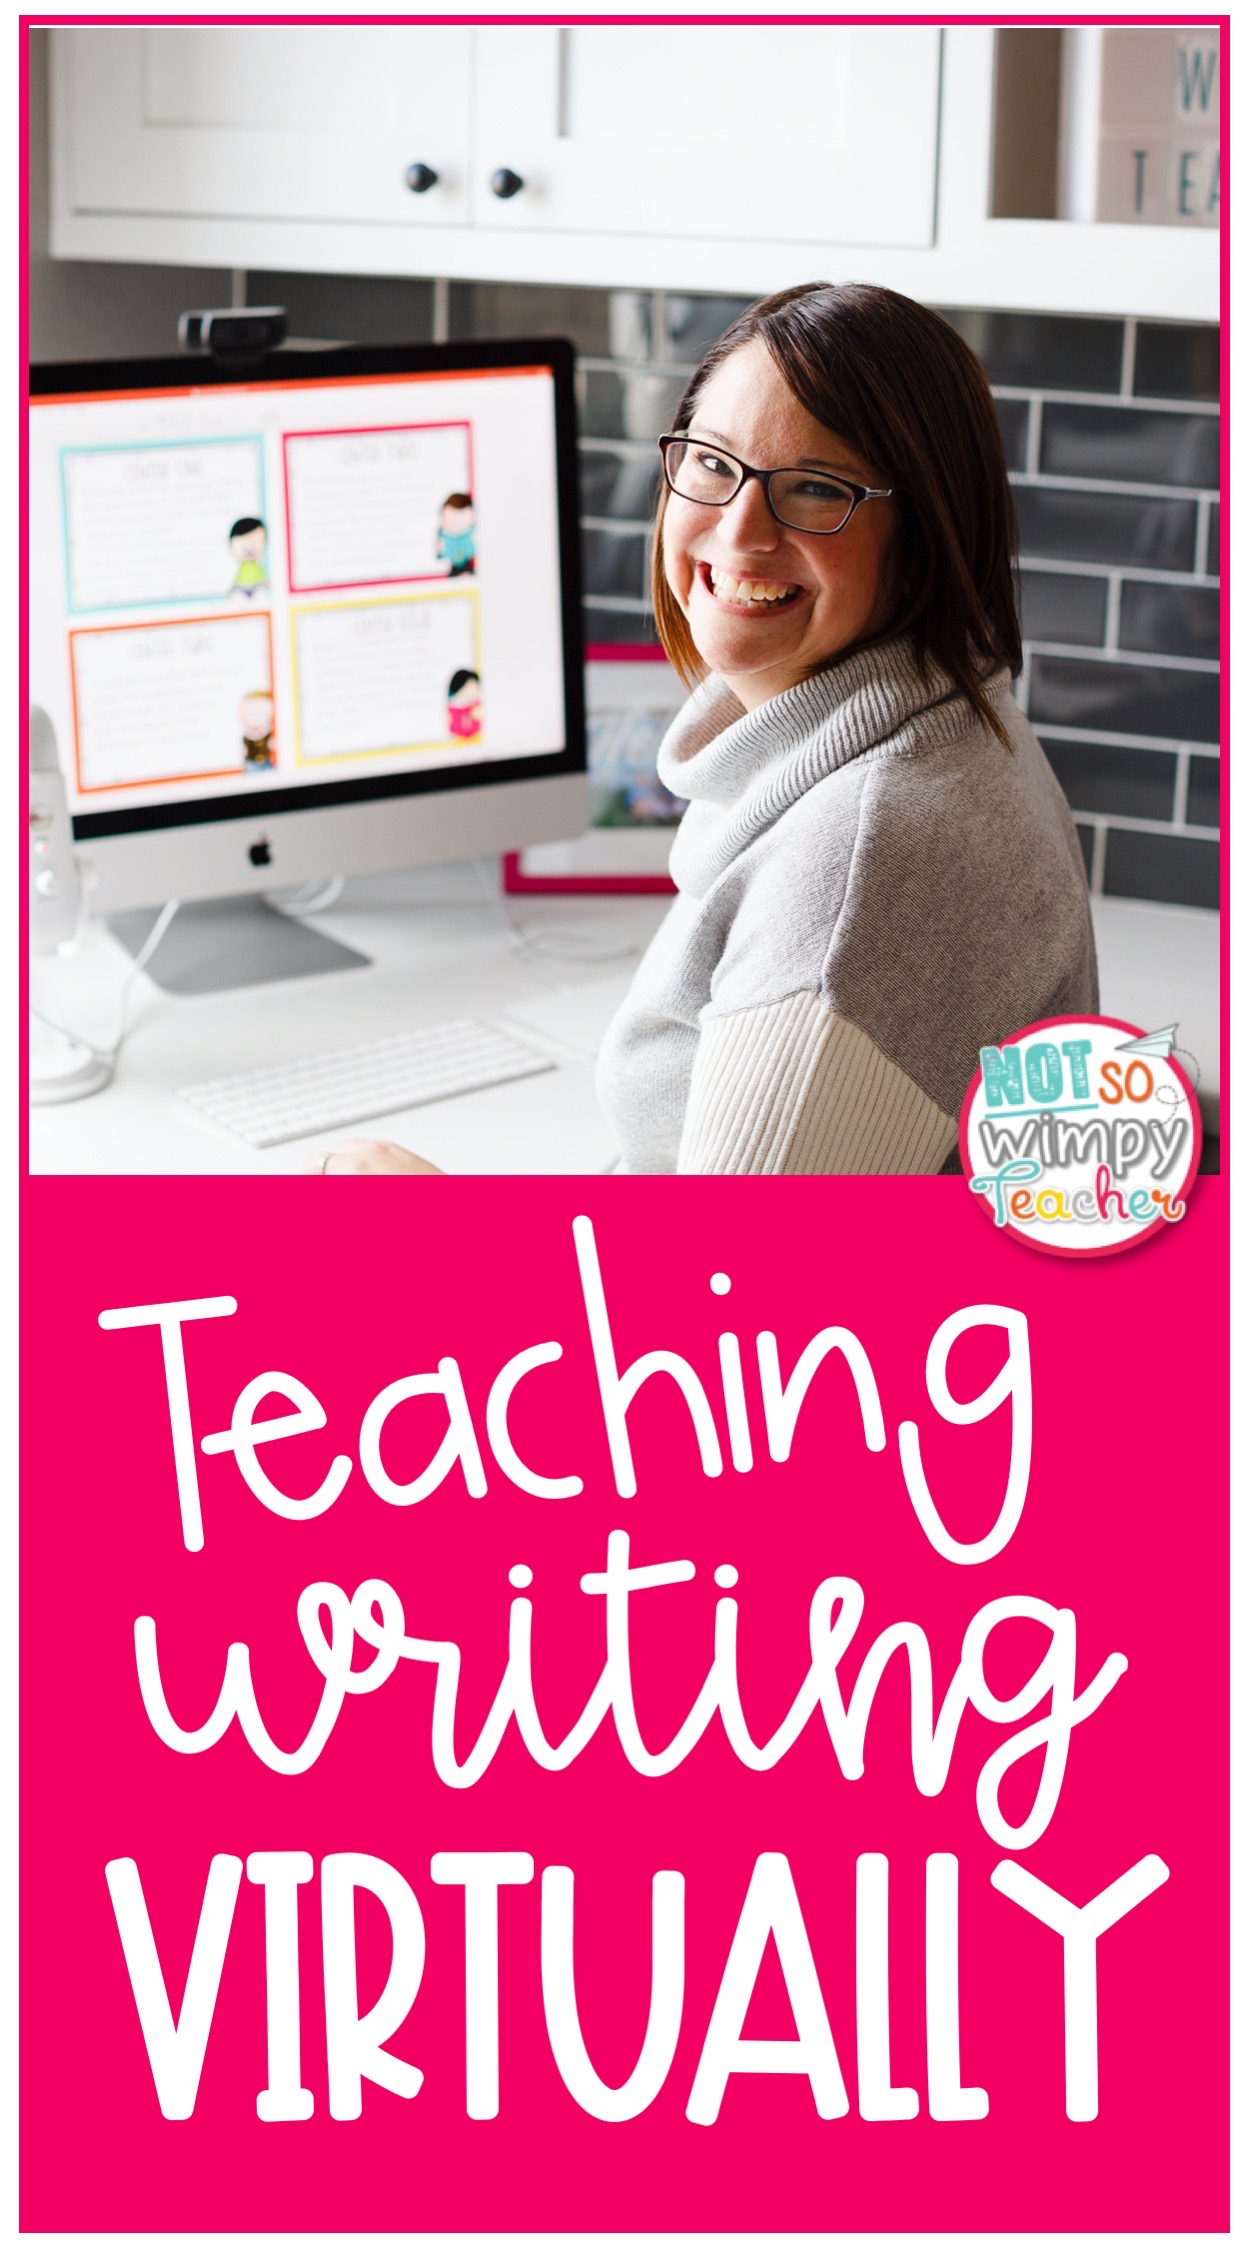 smiling teacher teaching writing virtually